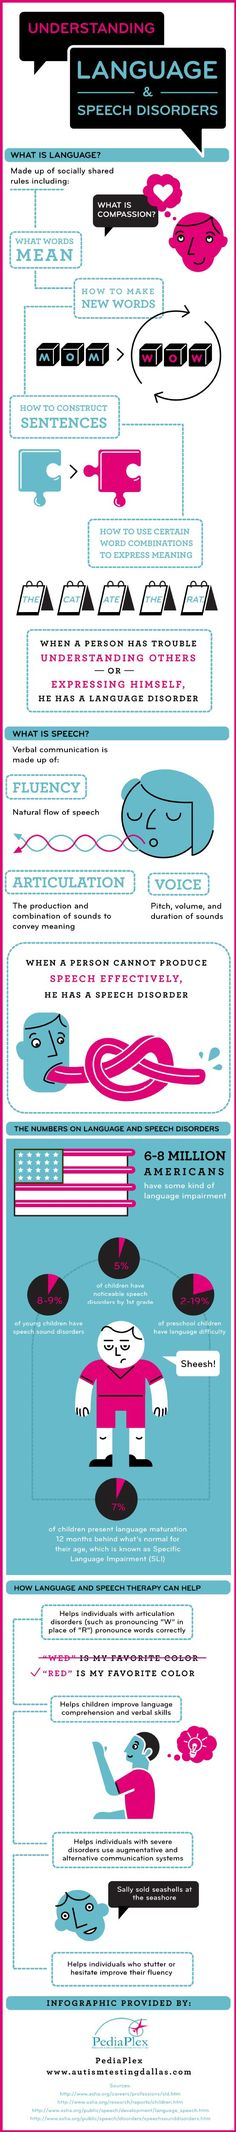 8-9% of young children have some kind of speech sound disorders. Turn to this infographic to learn more about how speech and language issues can affec: